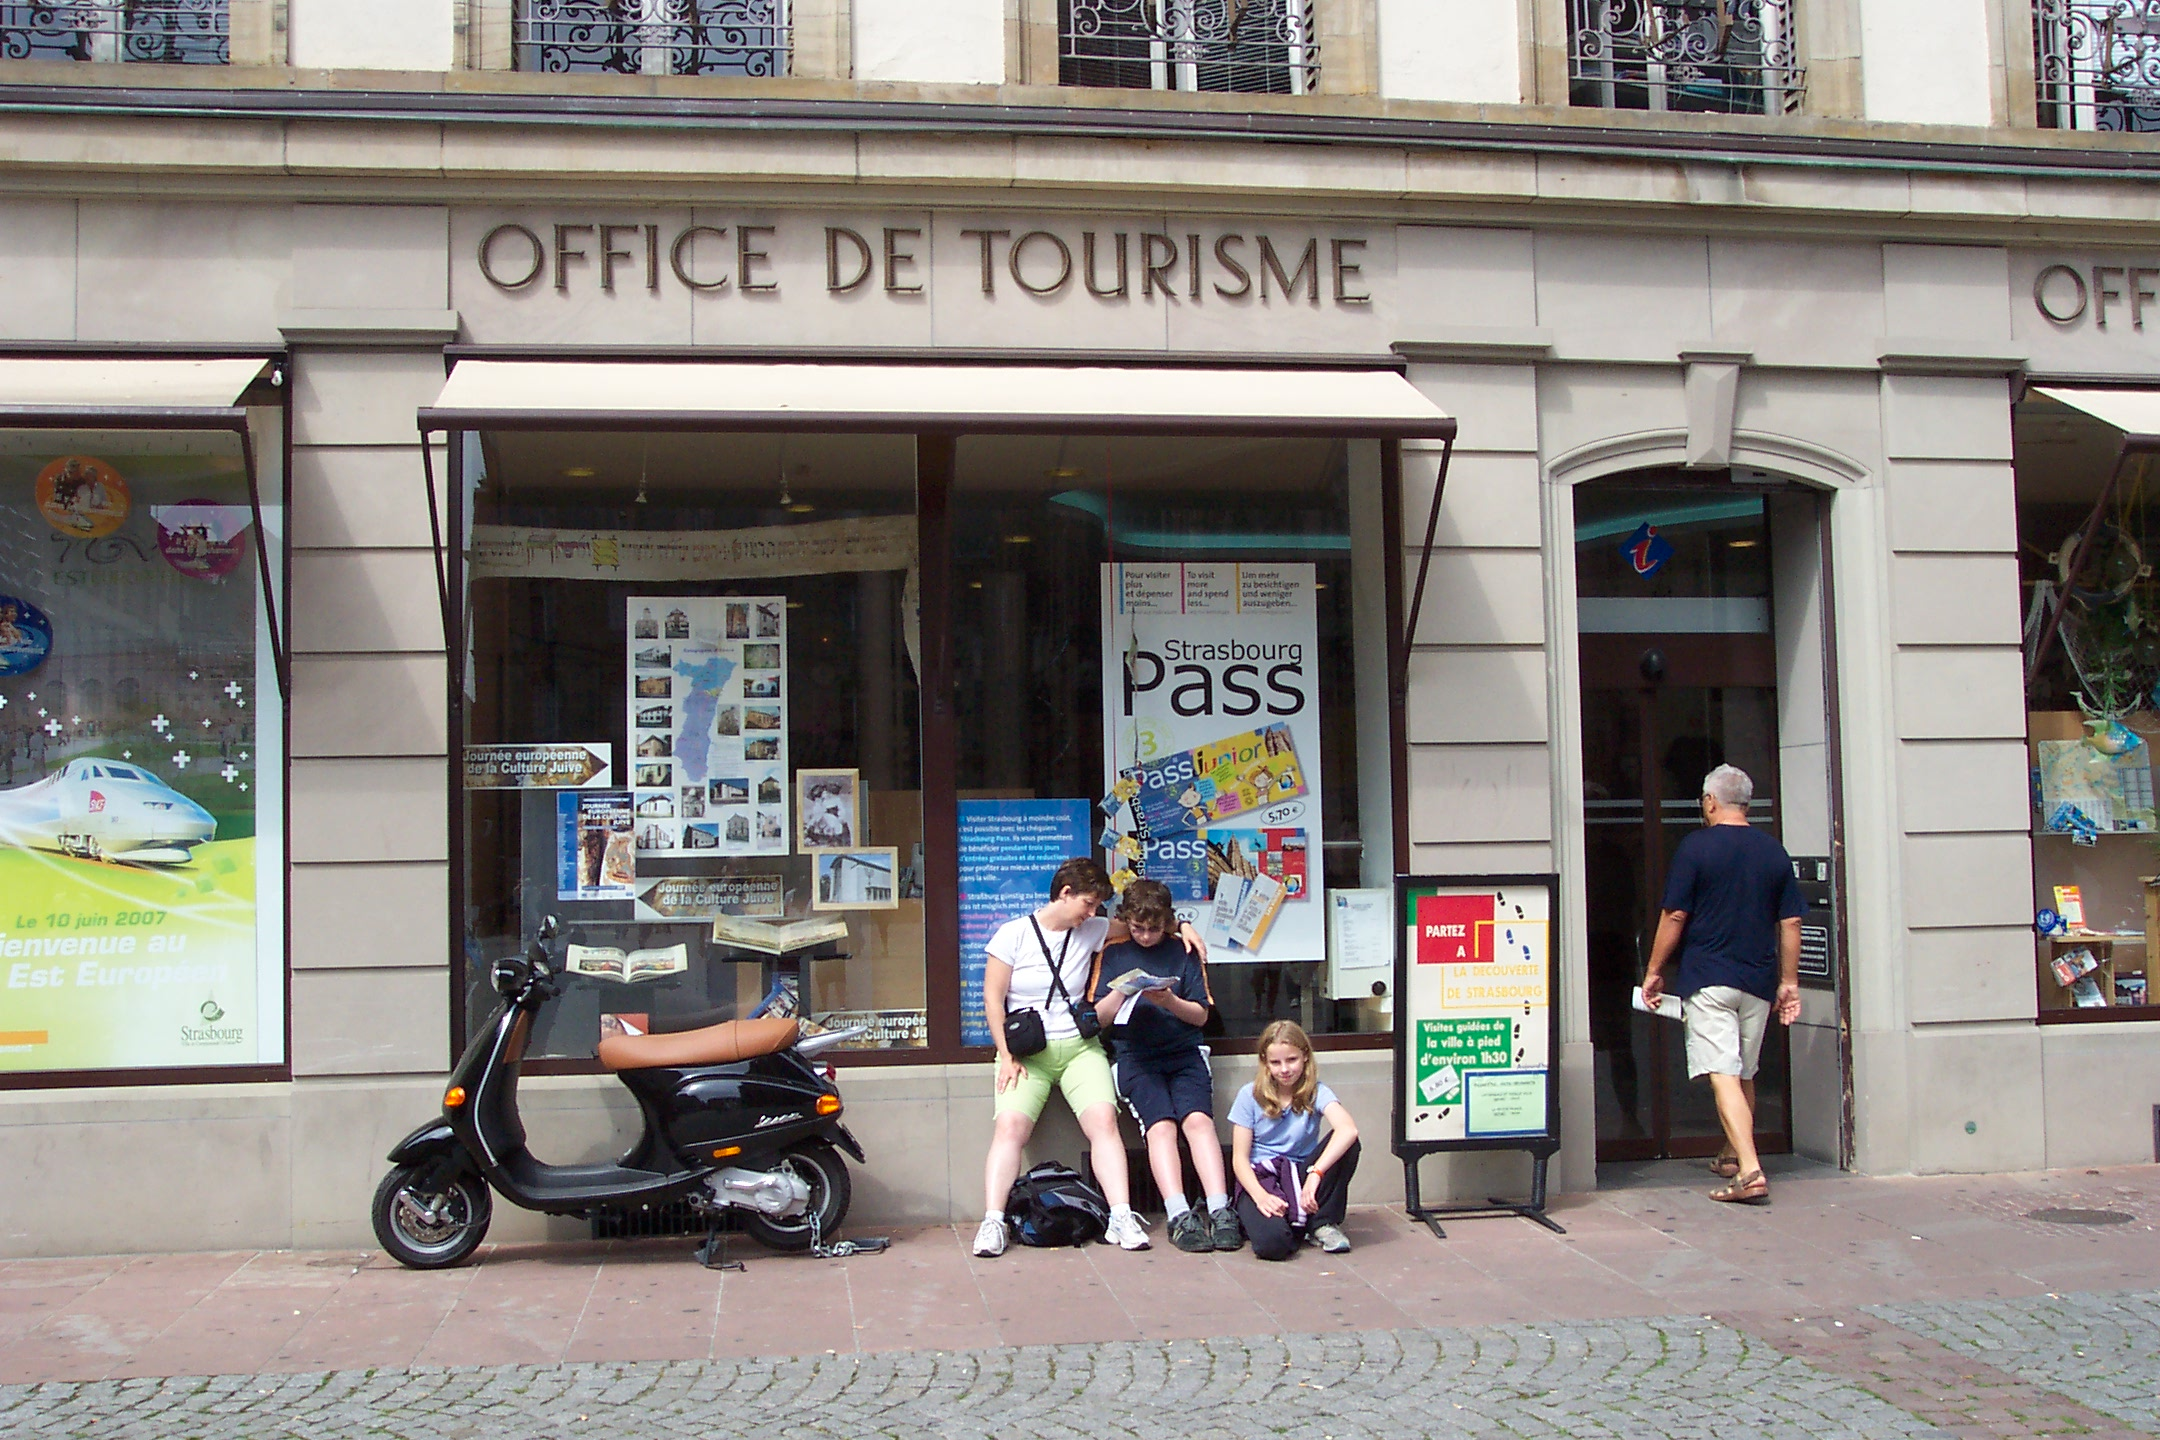 File office de tourisme de wikimedia commons - Office de tourisme des sables d olonne ...